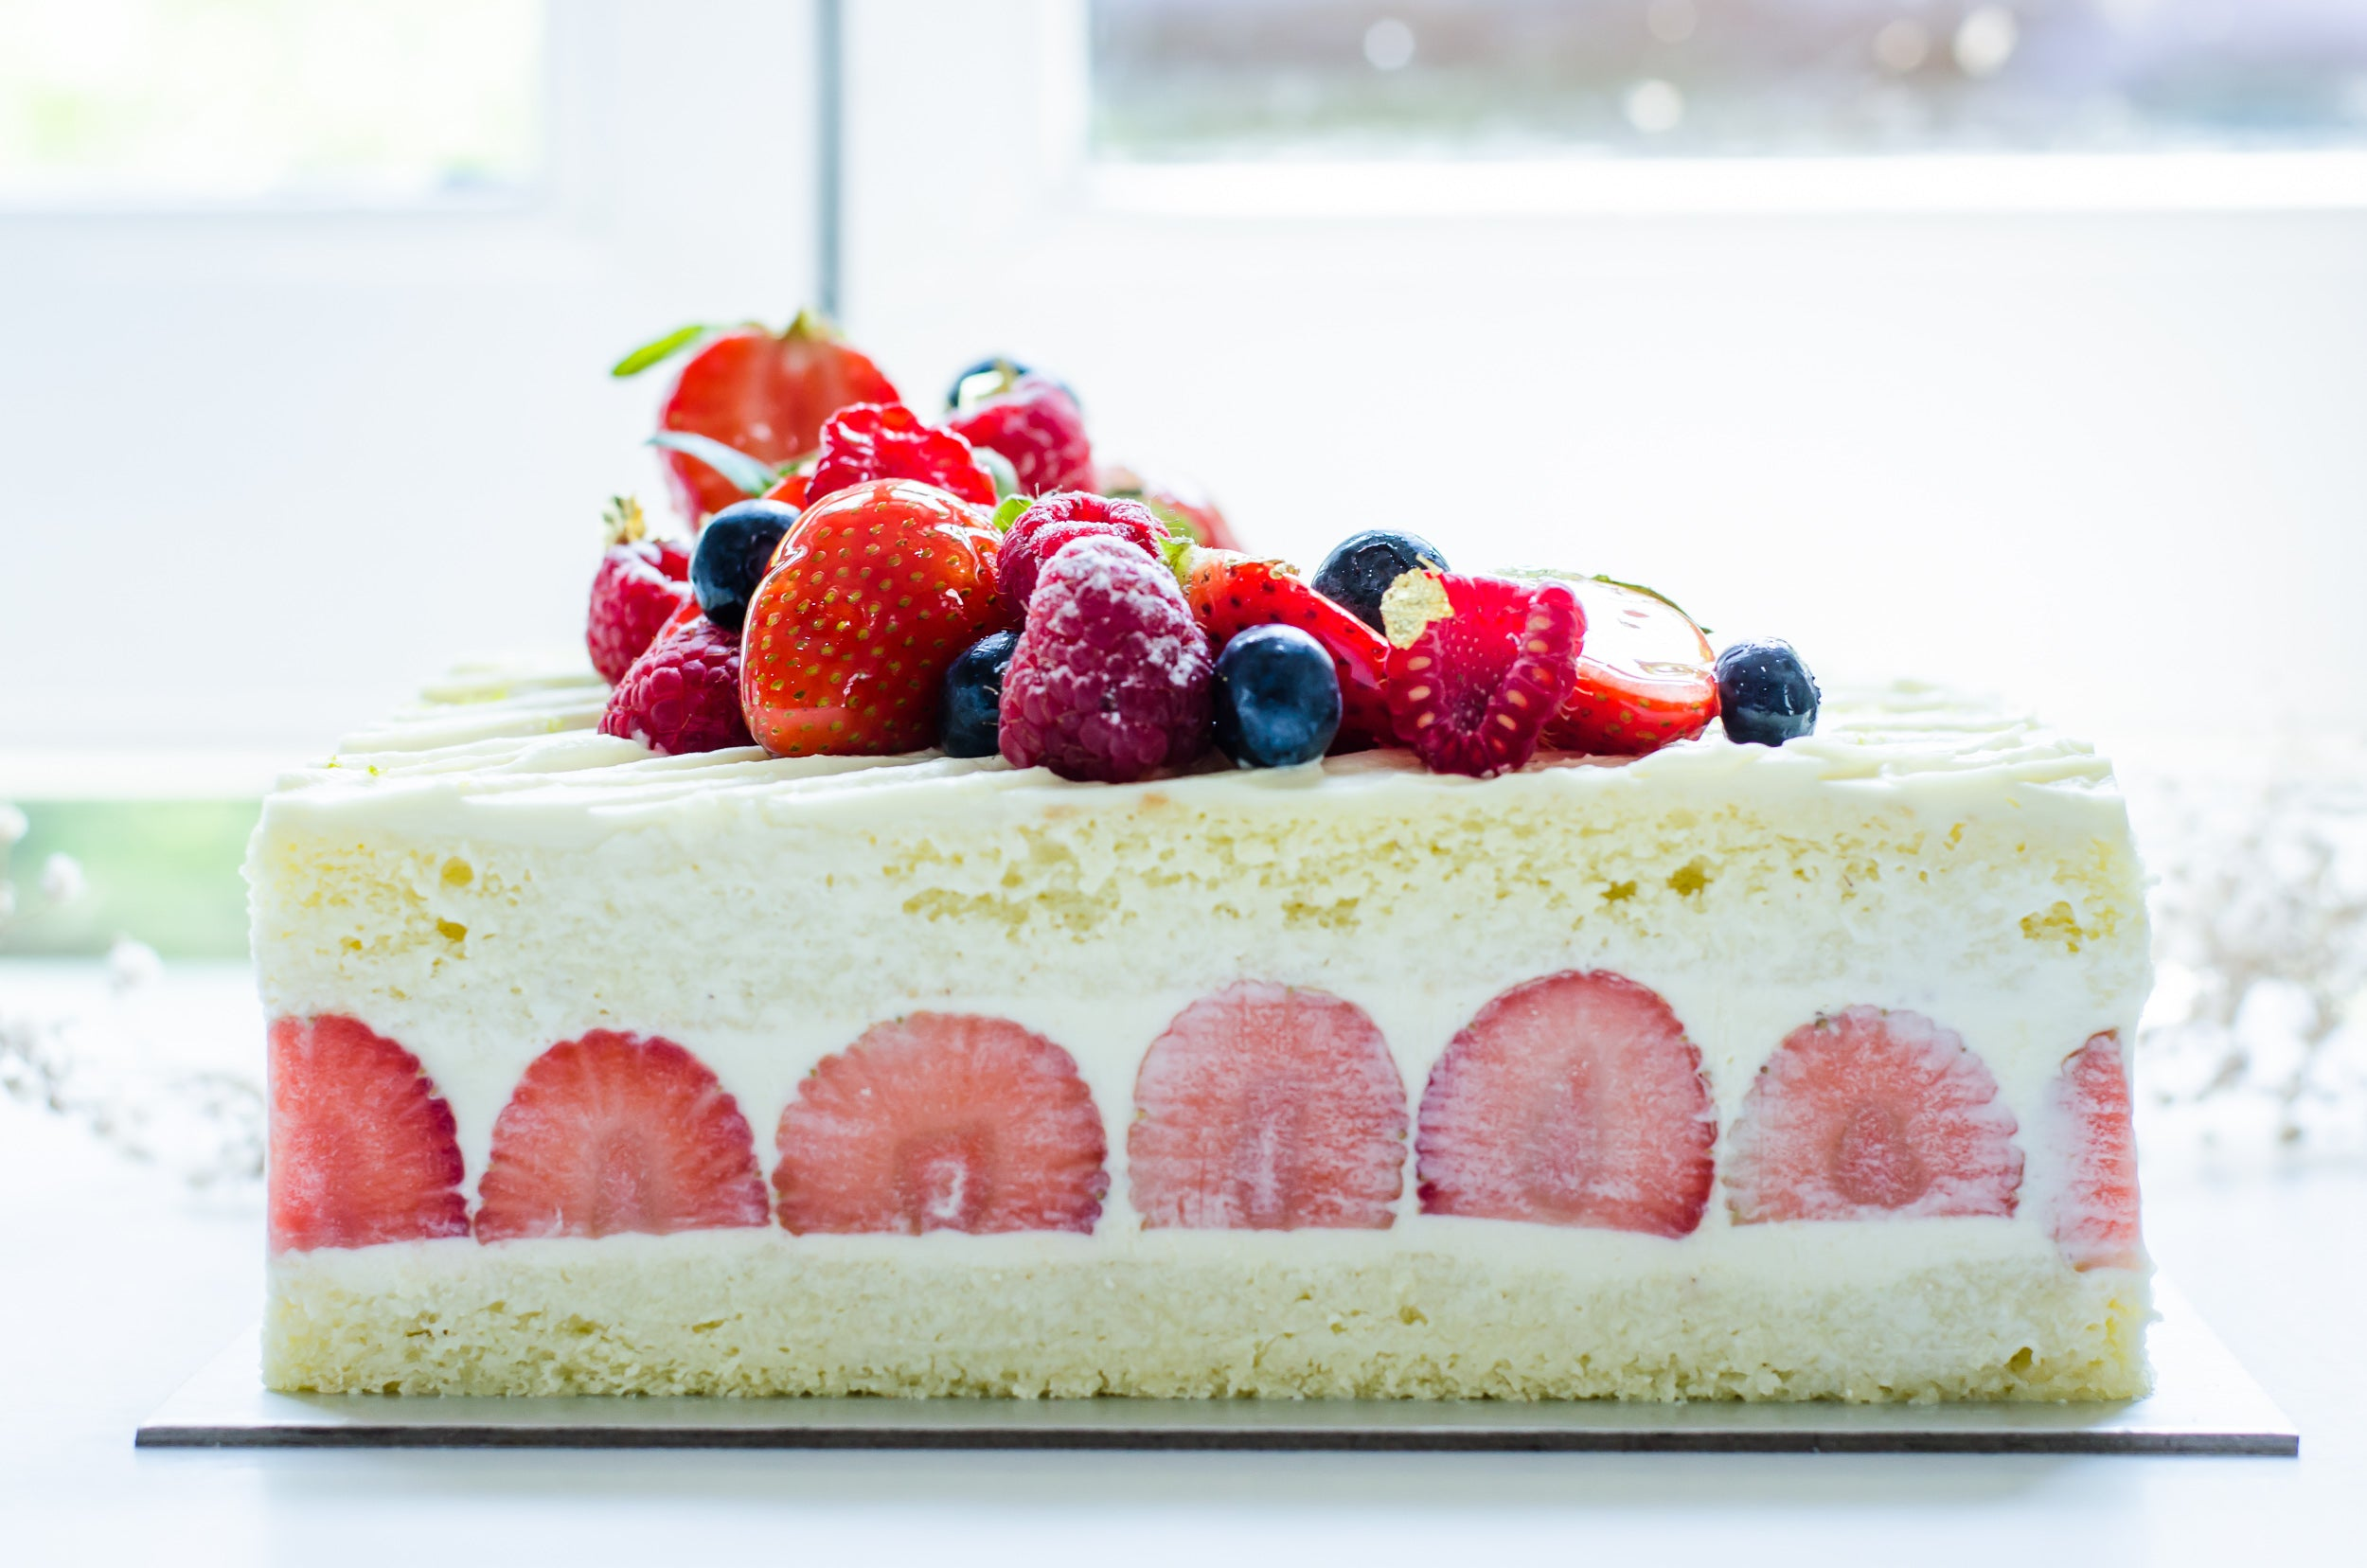 Strawberry Shortcake (Whole)